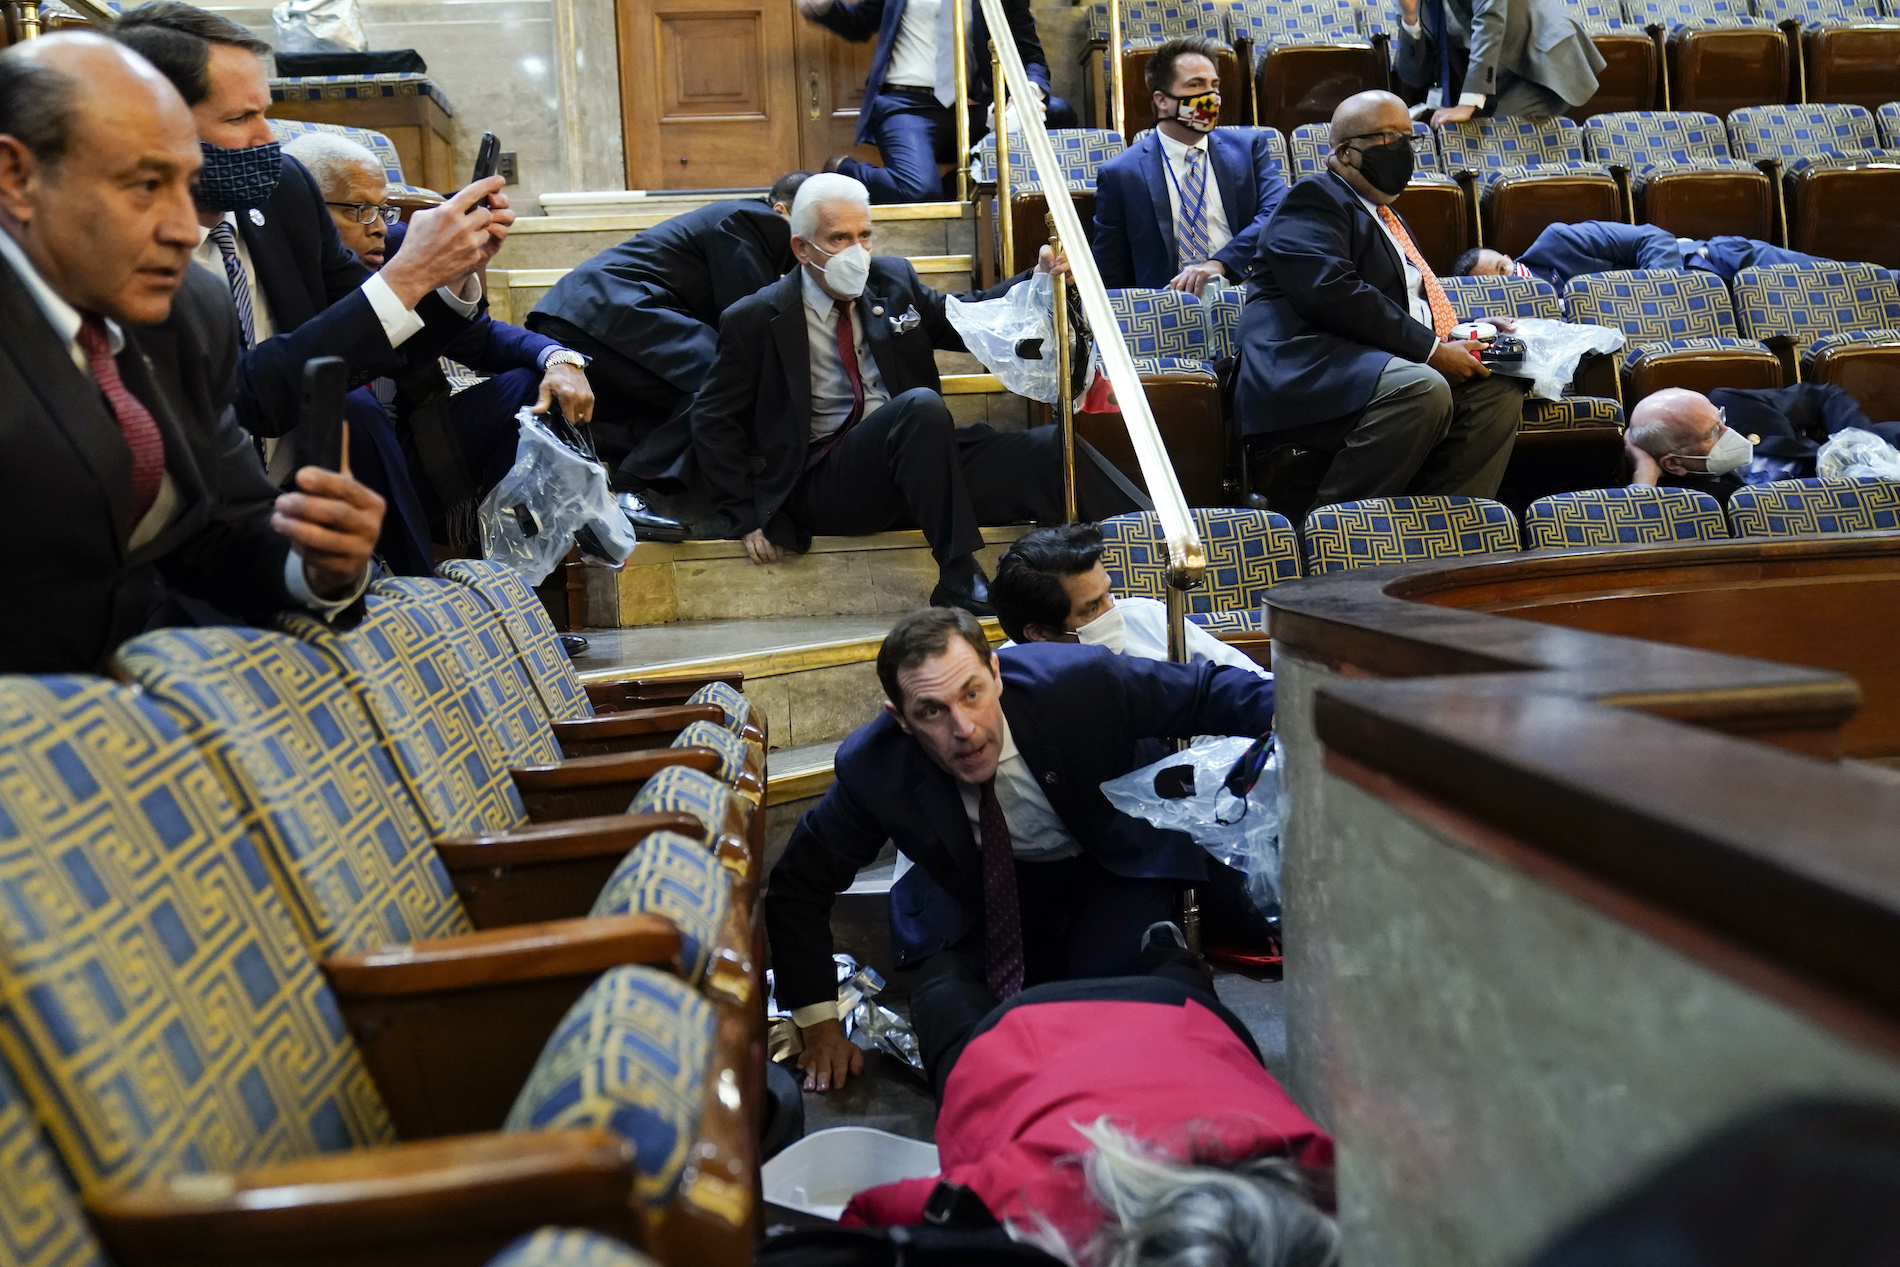 People shelter in the House gallery as pro-Trump insurrectionists try to break into the House Chamber at the U.S. Capitol